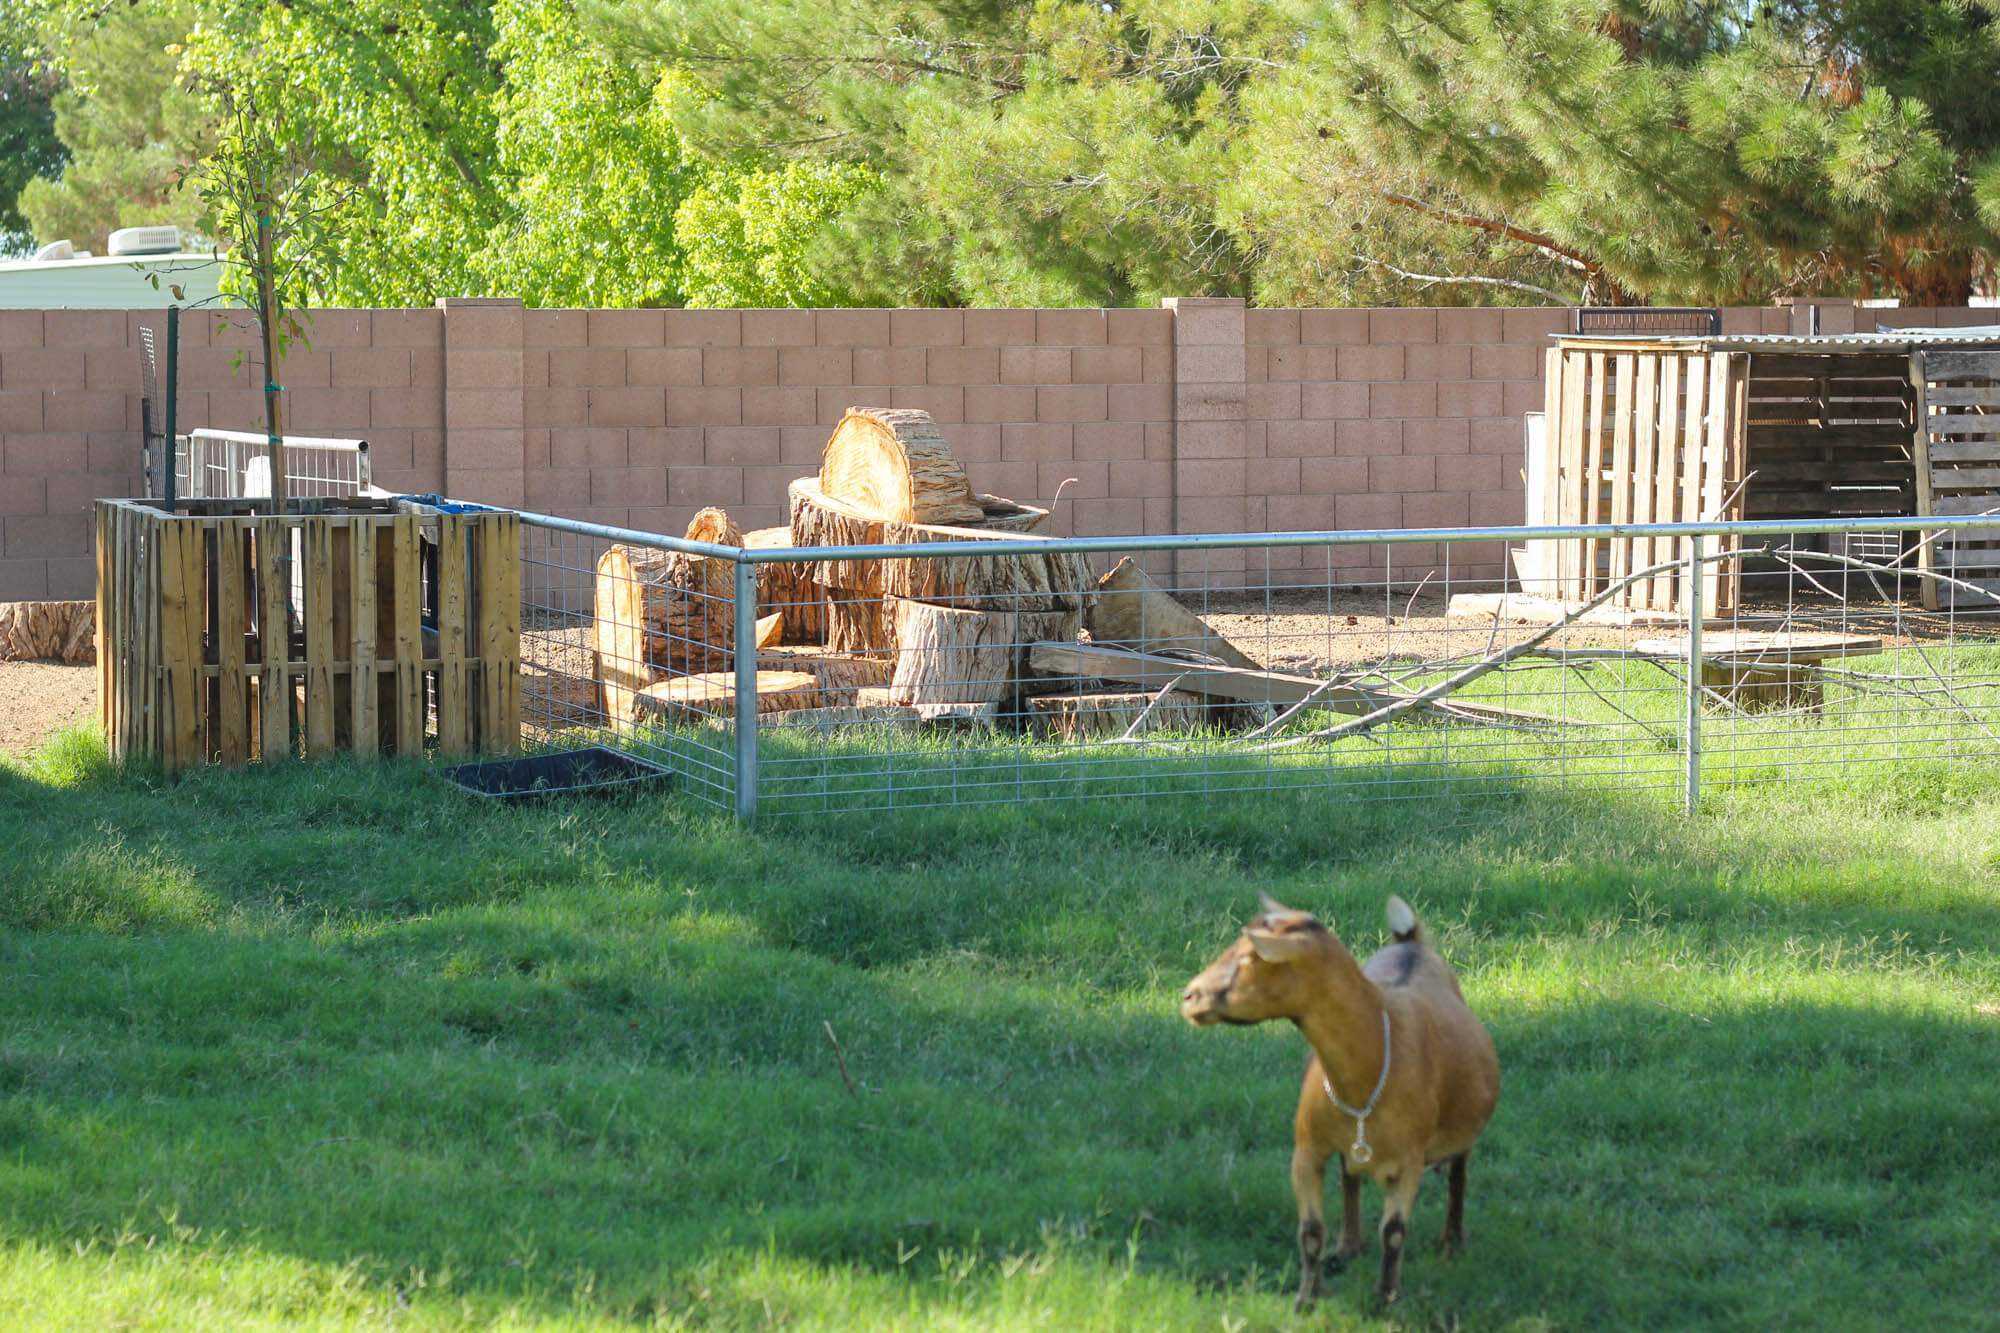 Building a goat pen - Weed 'em and Reap